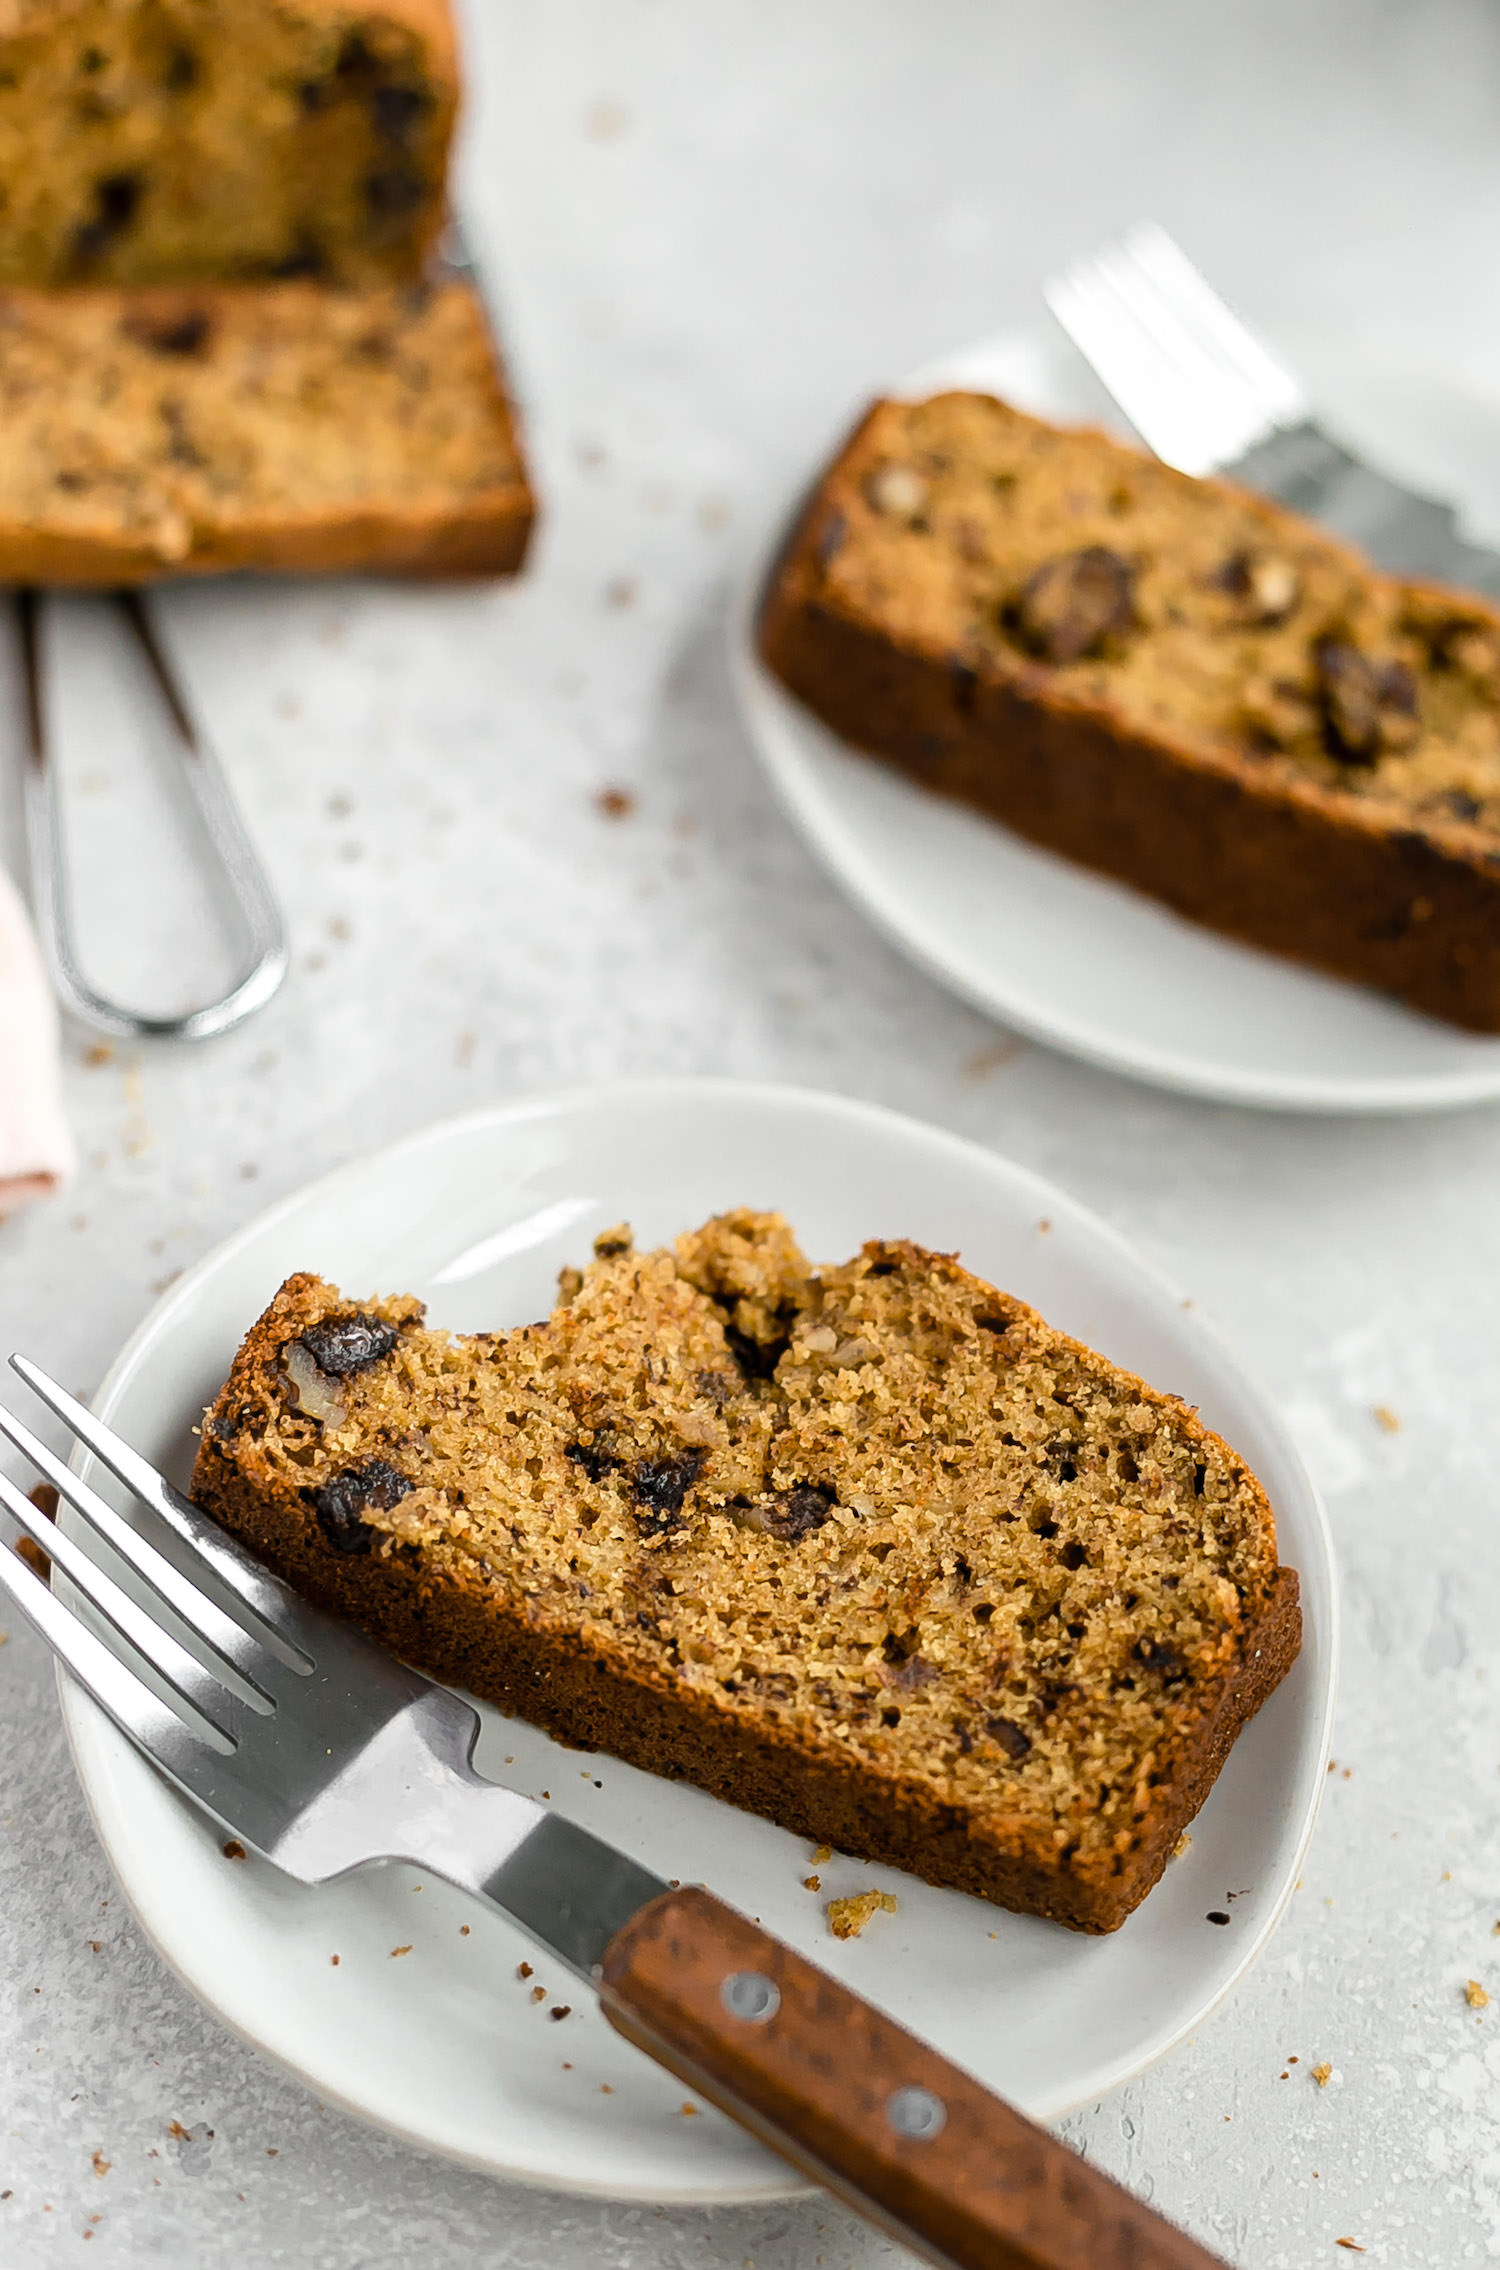 Wholesome Maple Chocolate Chip Walnut Banana Bread: soft, moist banana bread packed with chocolate chips and walnuts. Whole grain and refined sugar free!   TrufflesandTrends.com